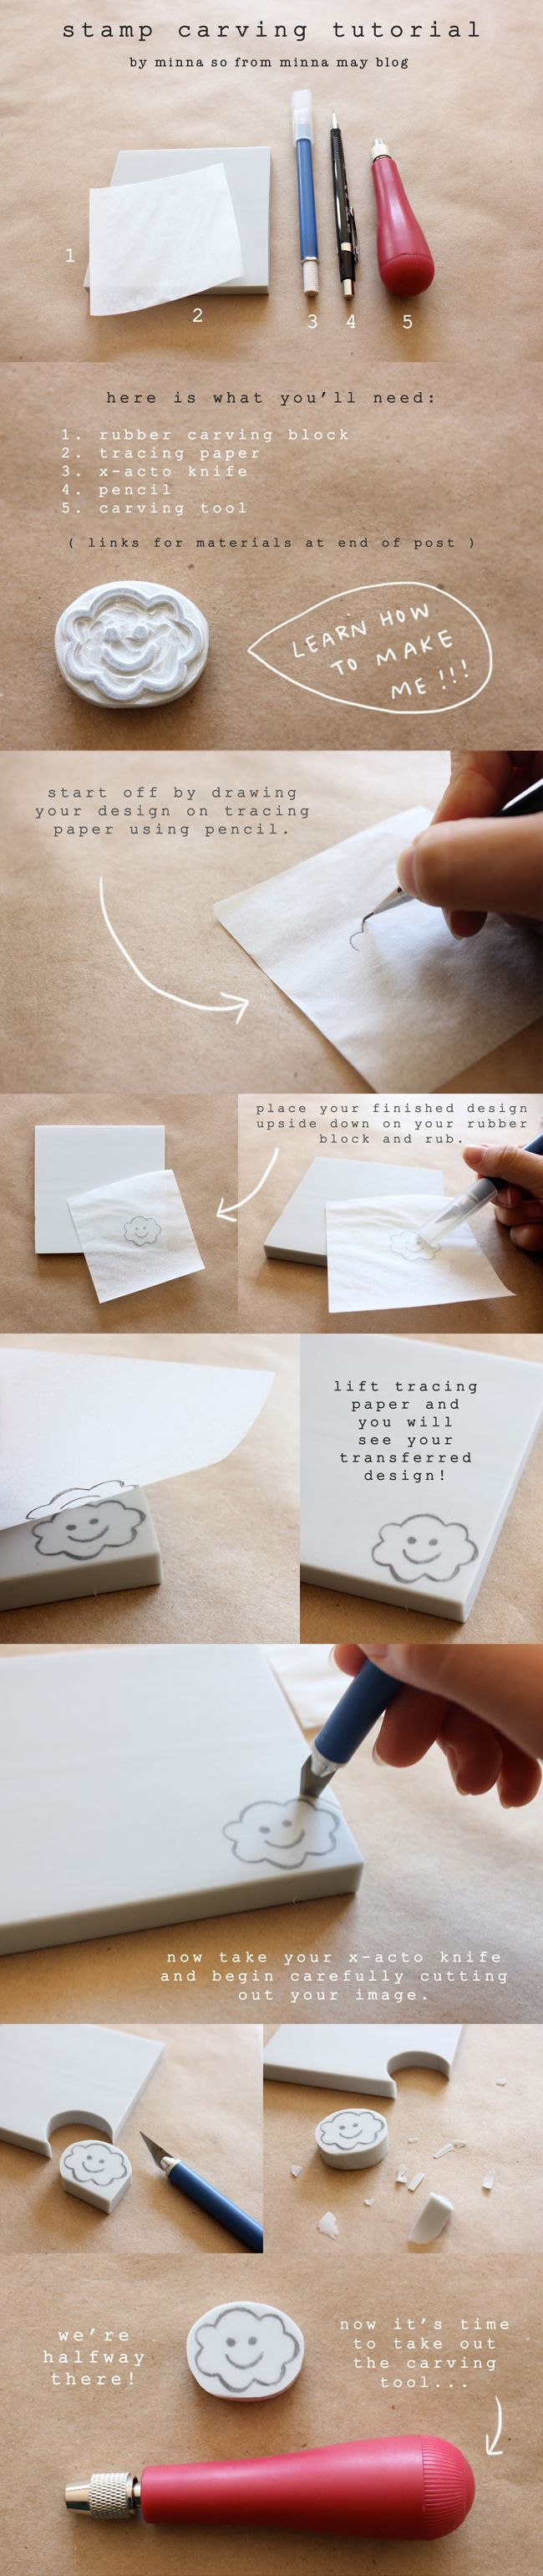 http://cargocollective.com/minnaso/diy-hand-carved-stamp-tutorial